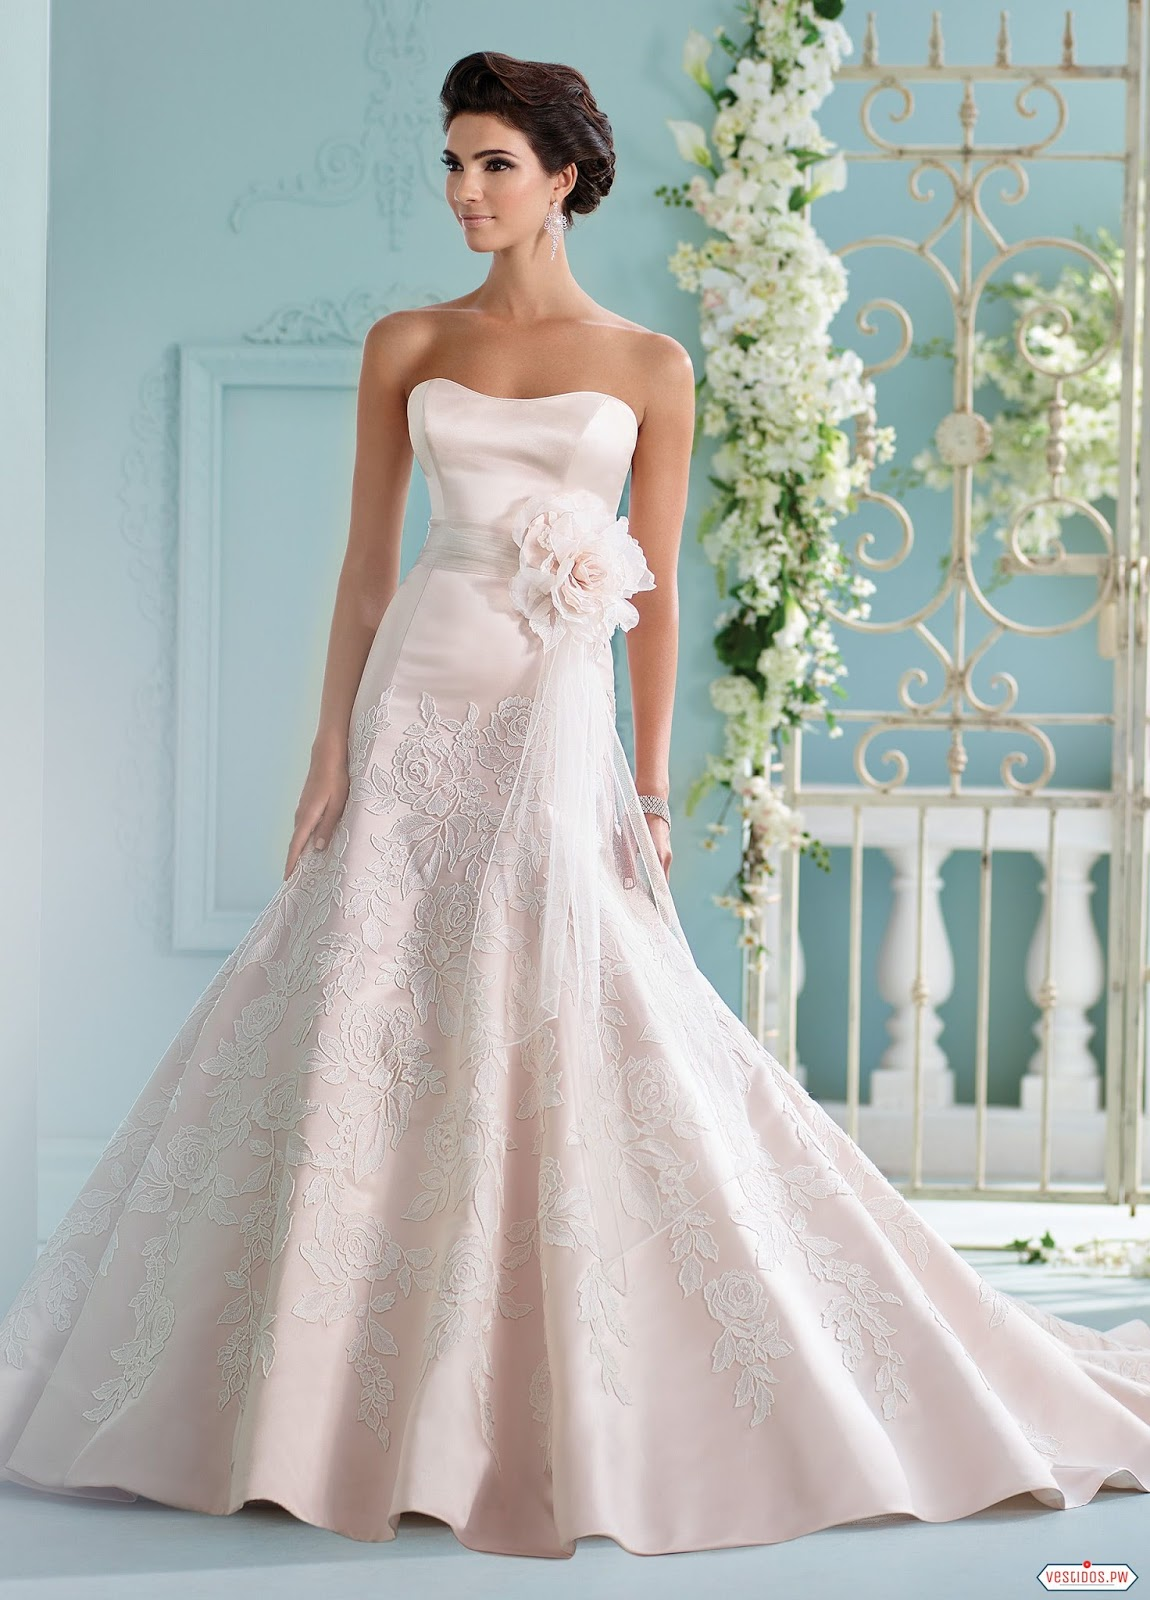 Fantastic Vestidos De Novia De Moda Gallery - All Wedding Dresses ...